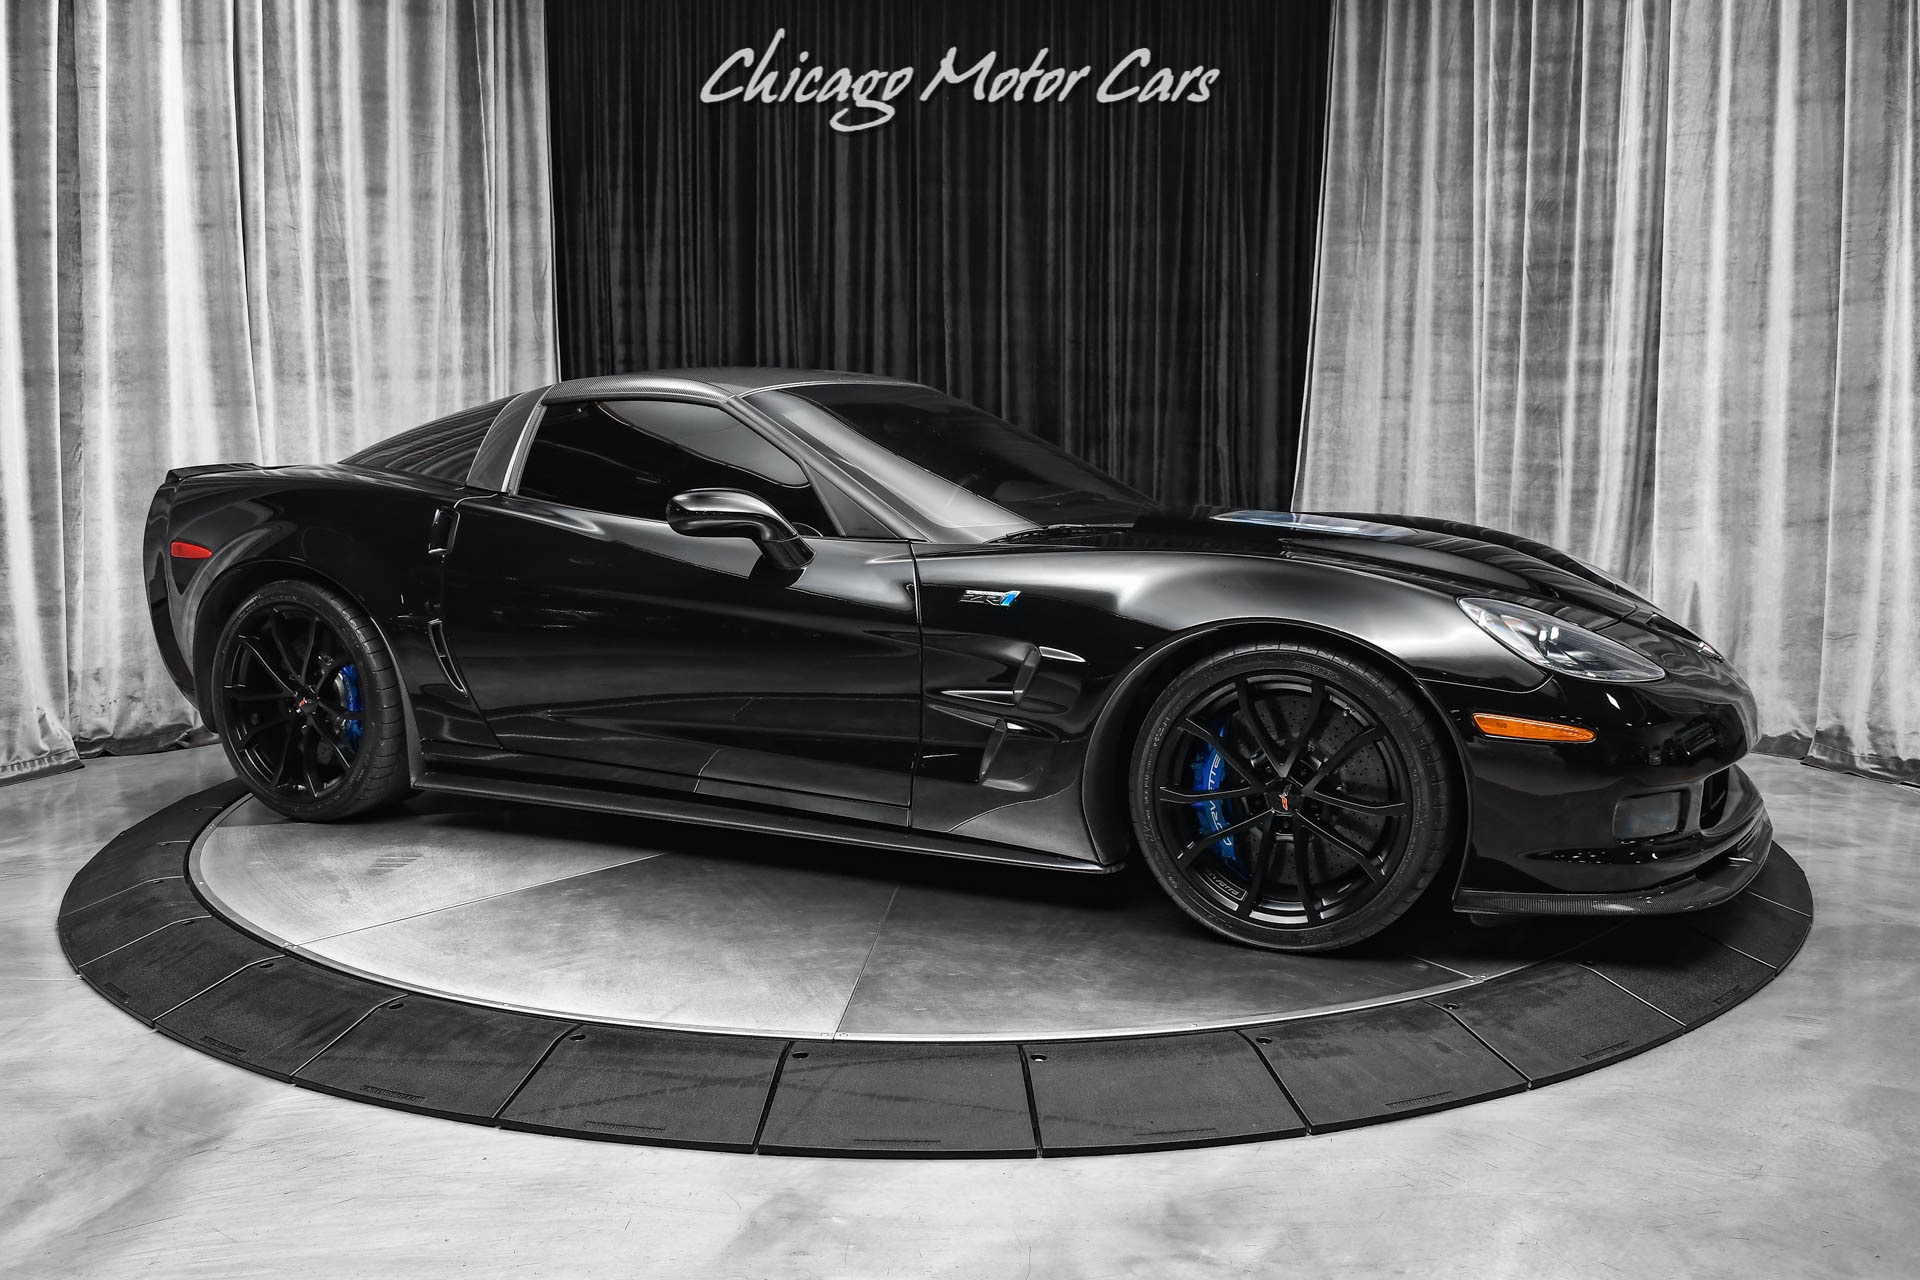 Used-2011-Chevrolet-Corvette-ZR1-3ZR-6-Speed-Manual-700WHP-Tens-of-Thousands-in-Upgrades